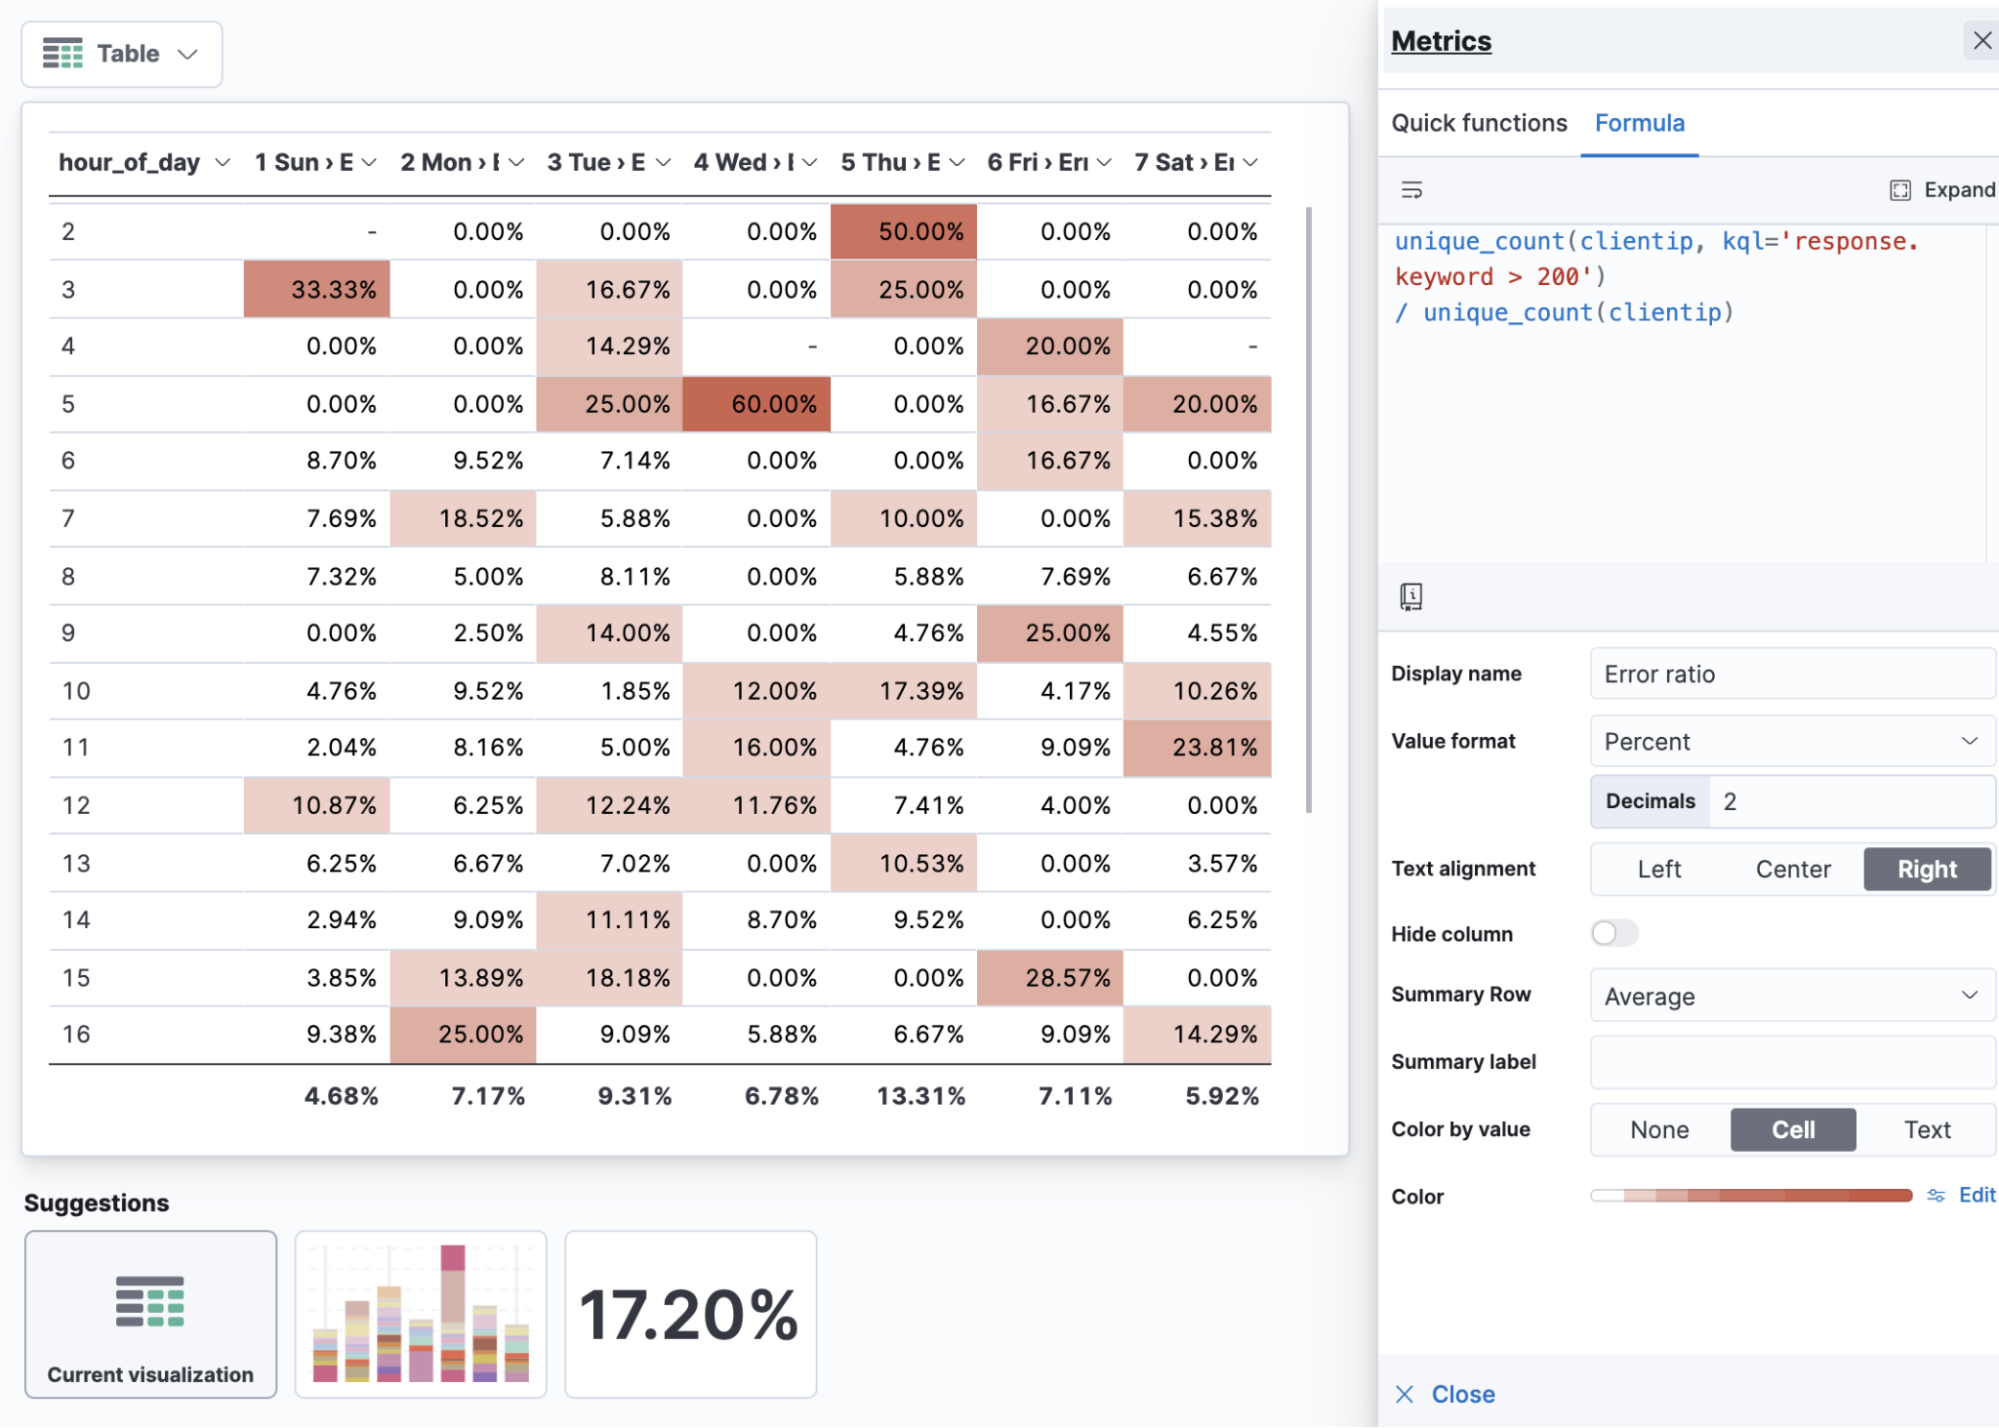 Using formulas in Kibana Lens for ratios and visualizing with color-by-value.